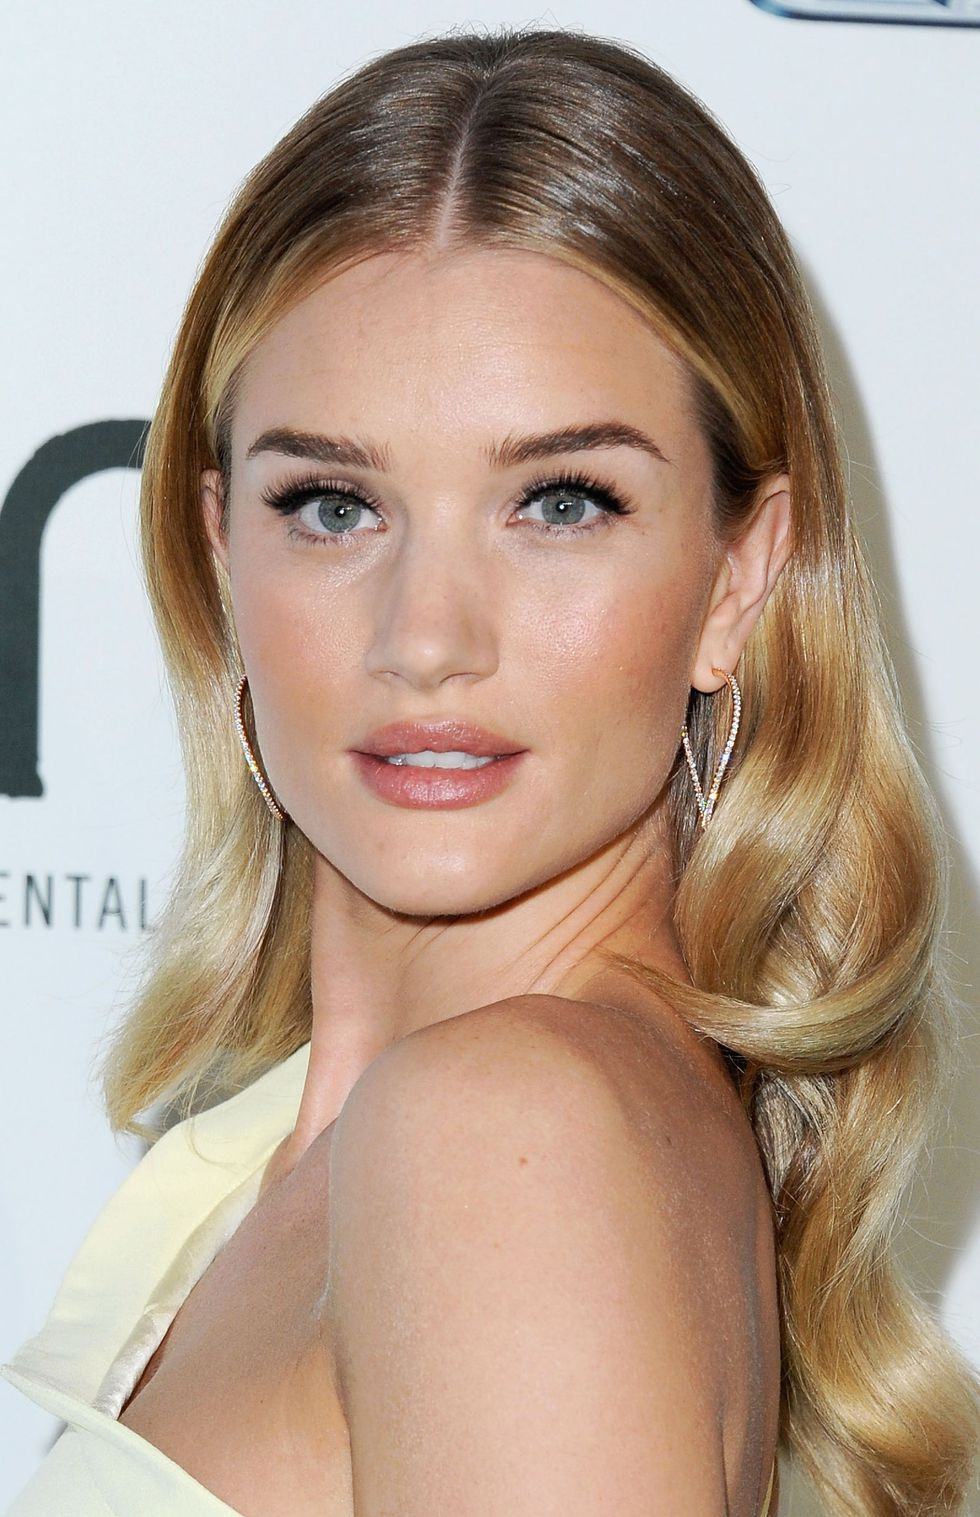 soft-natural-how-to-do-your-makeup-for-wedding-guest-beauty-rosie-huntington.jpg